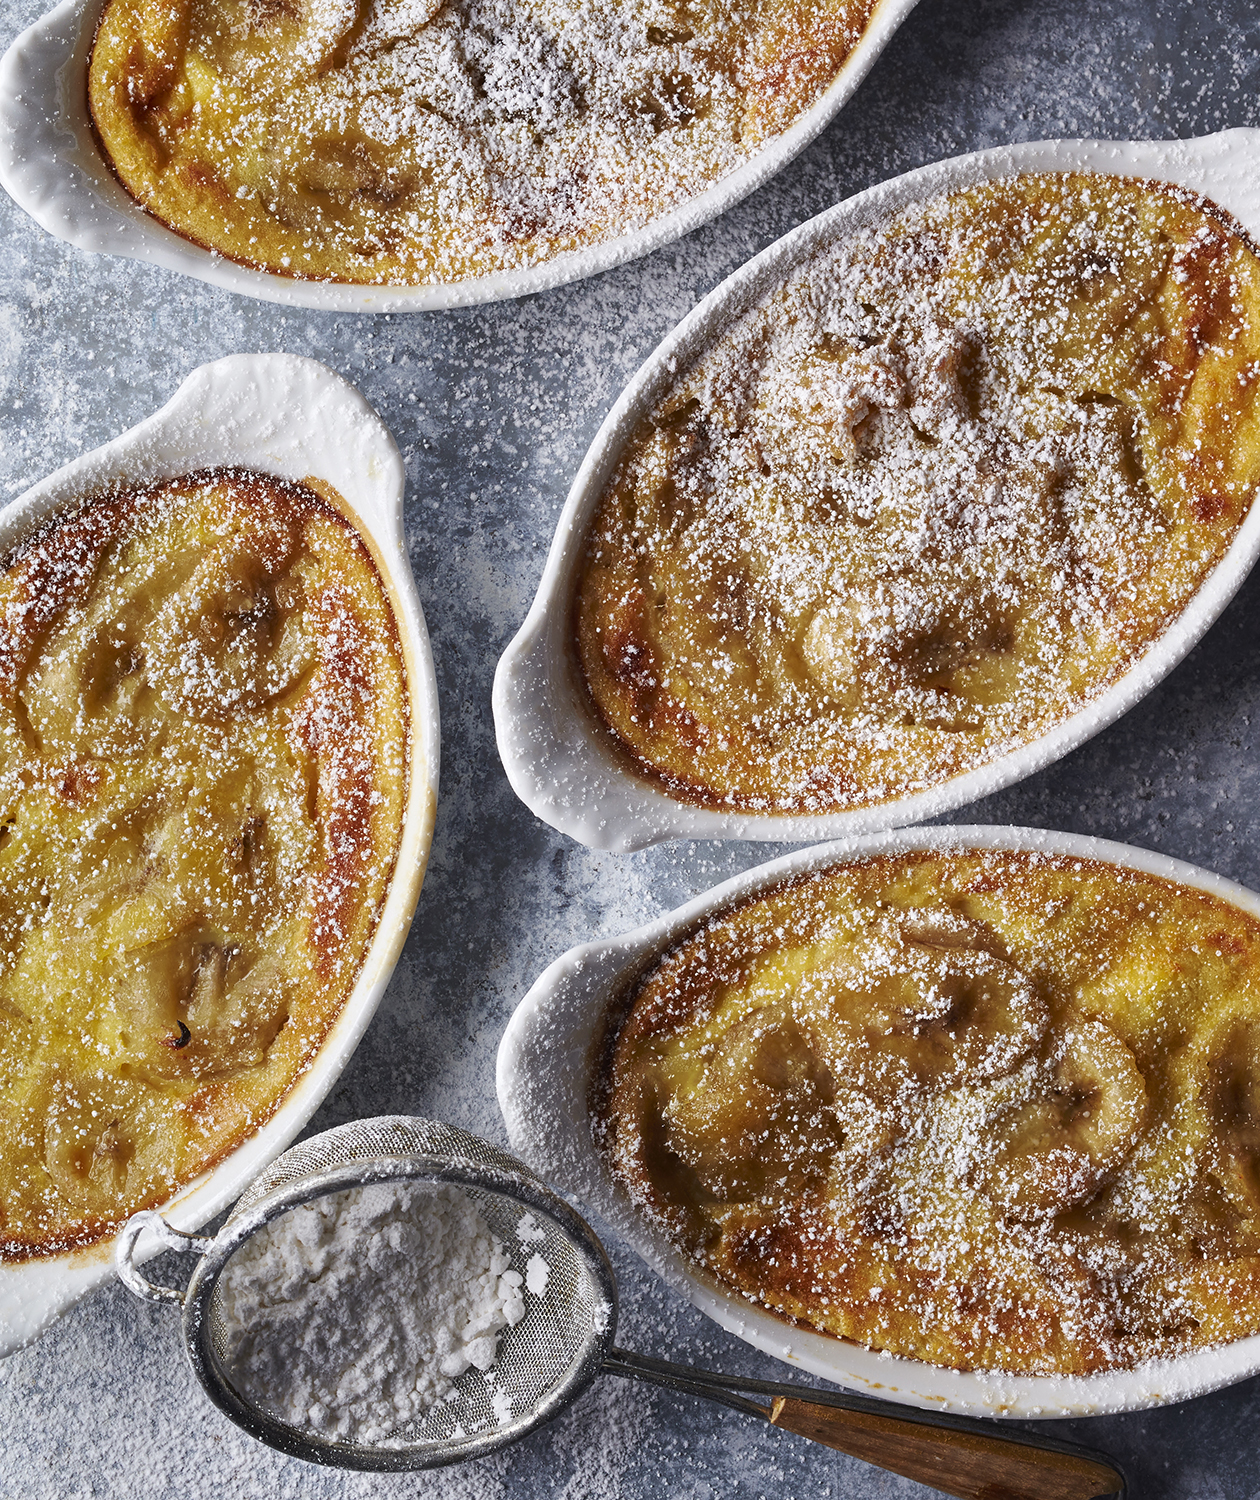 Caramelized Banana Clafoutis